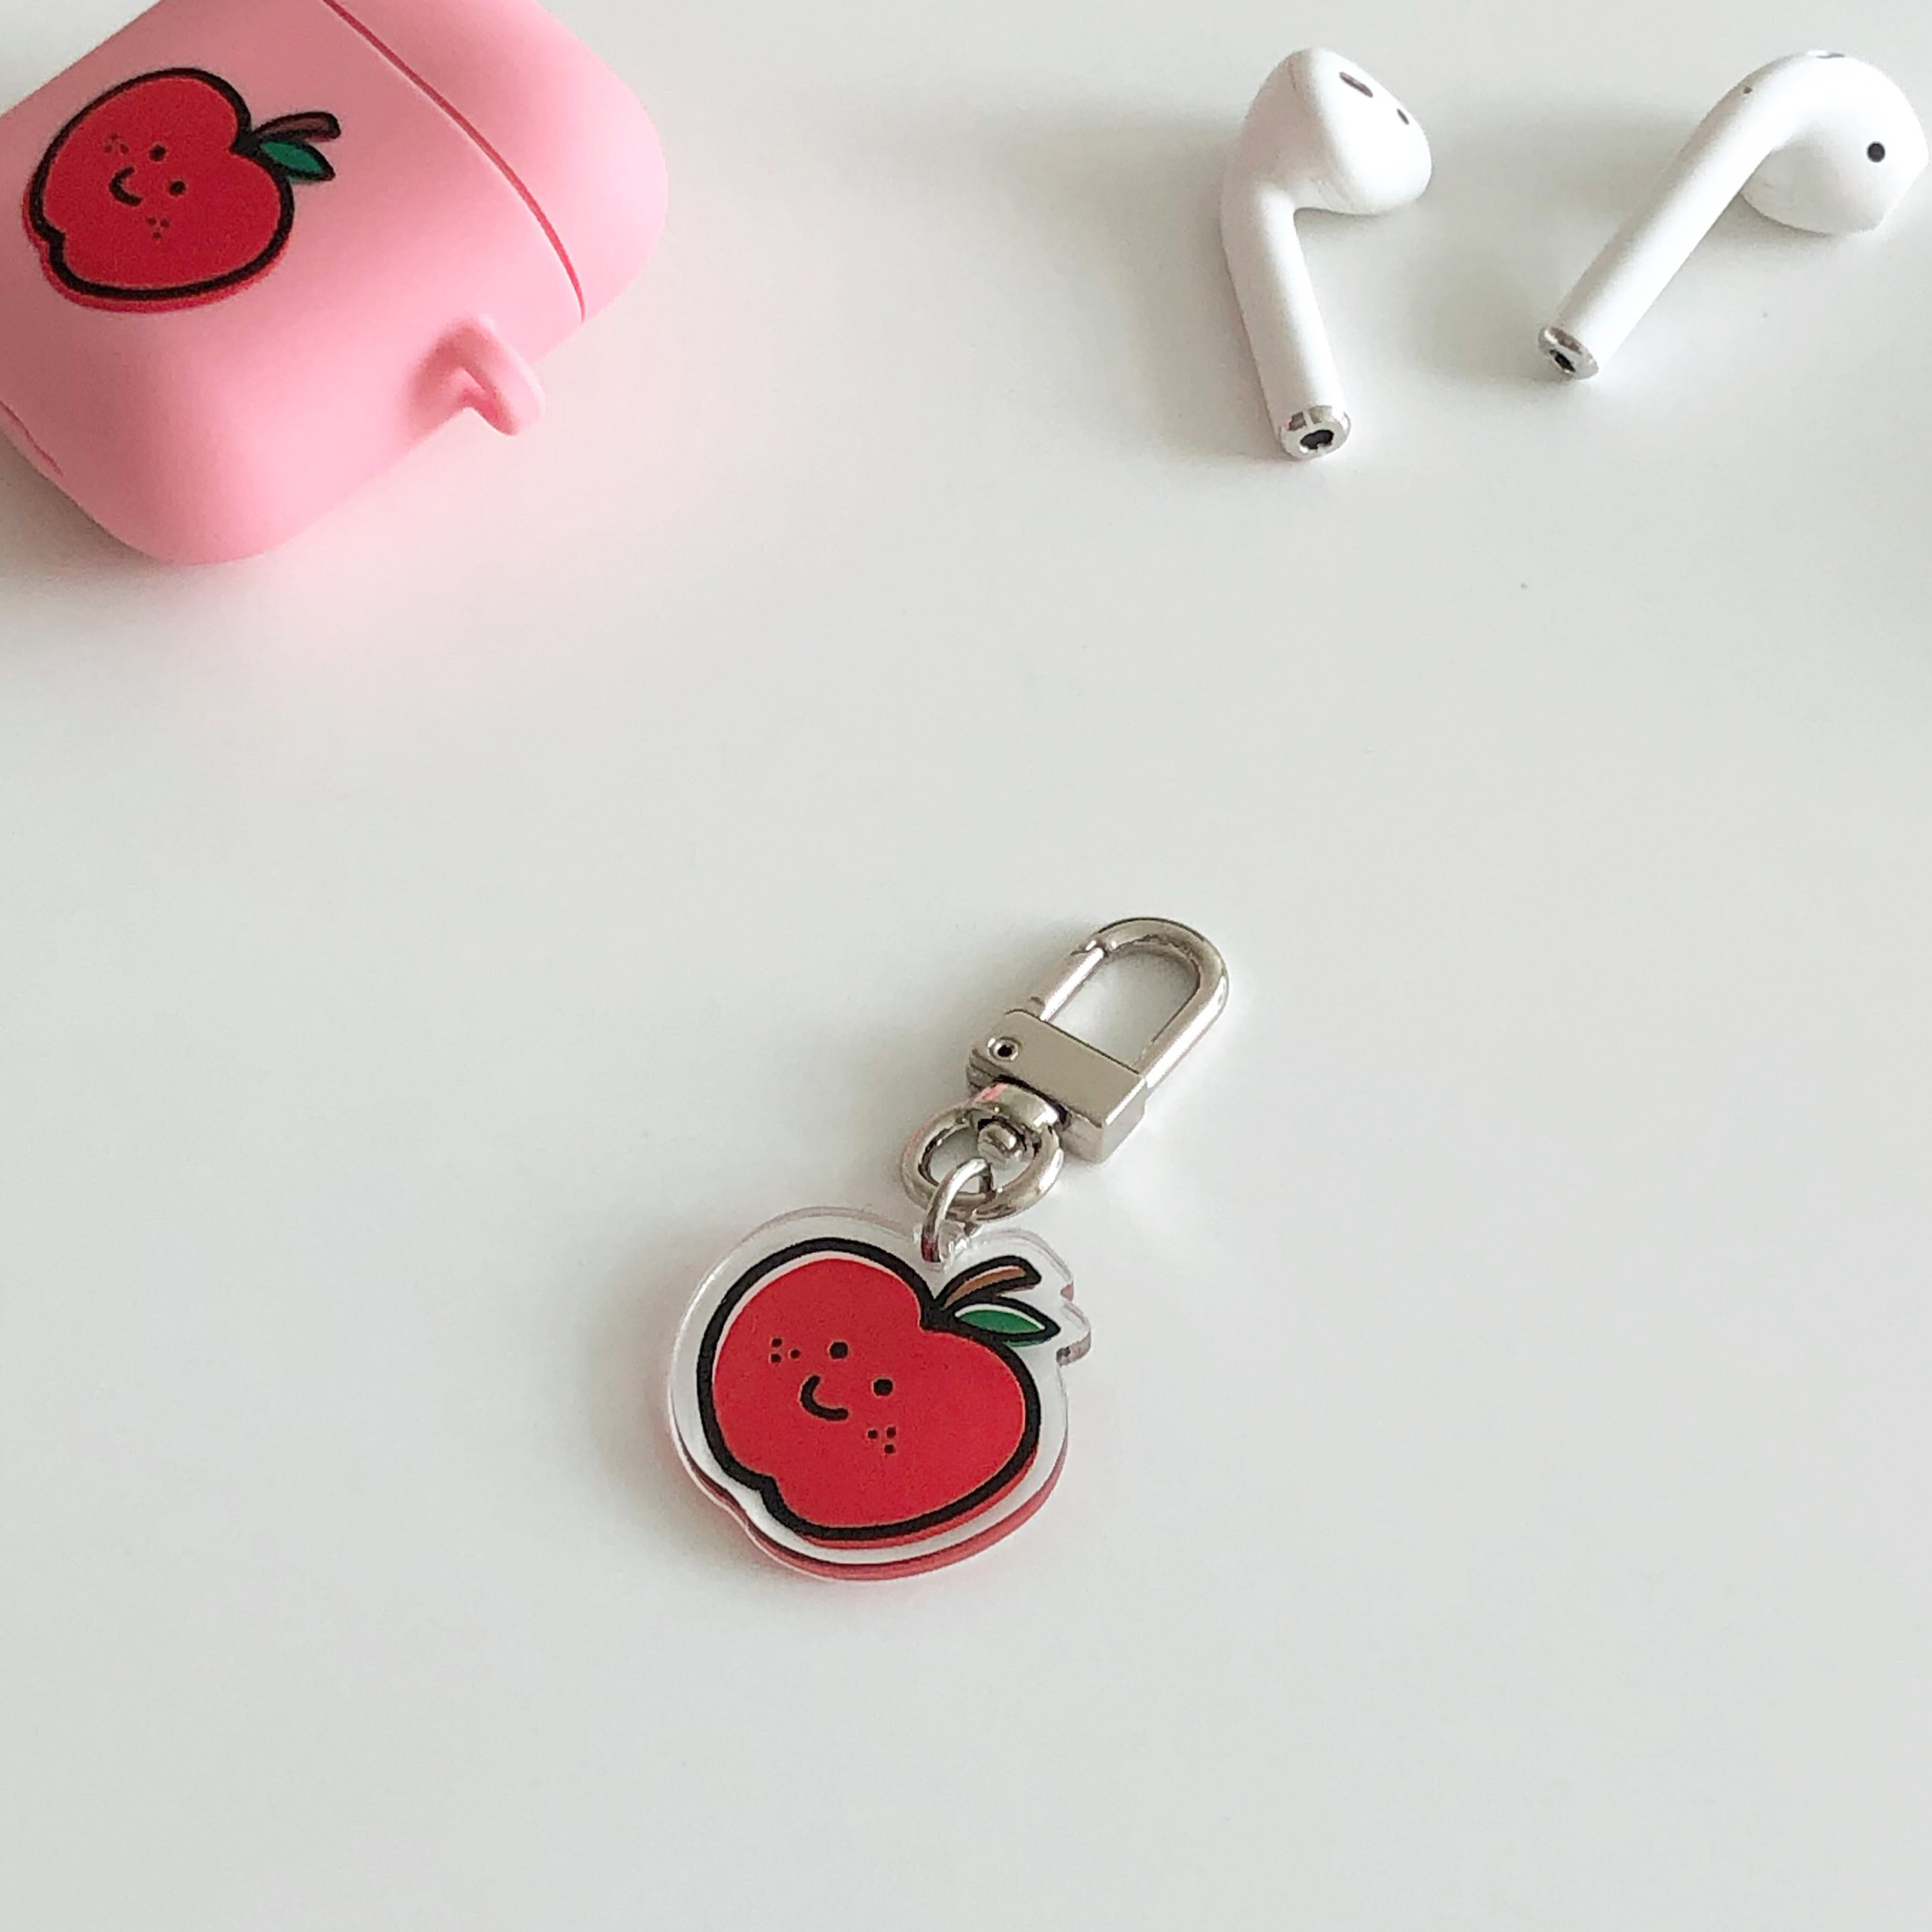 Apple key ring (아크릴)